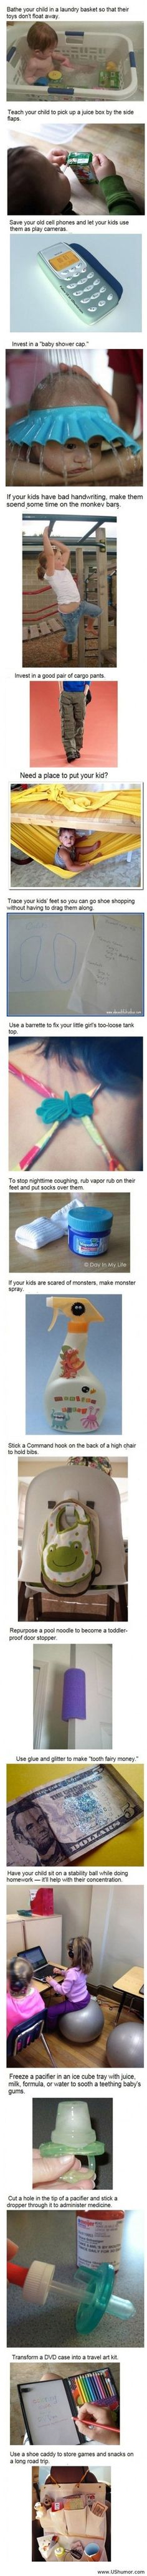 Parenting, doing right! US Humor - Funny pictures, Quotes, Pics, Photos, Images on imgfave